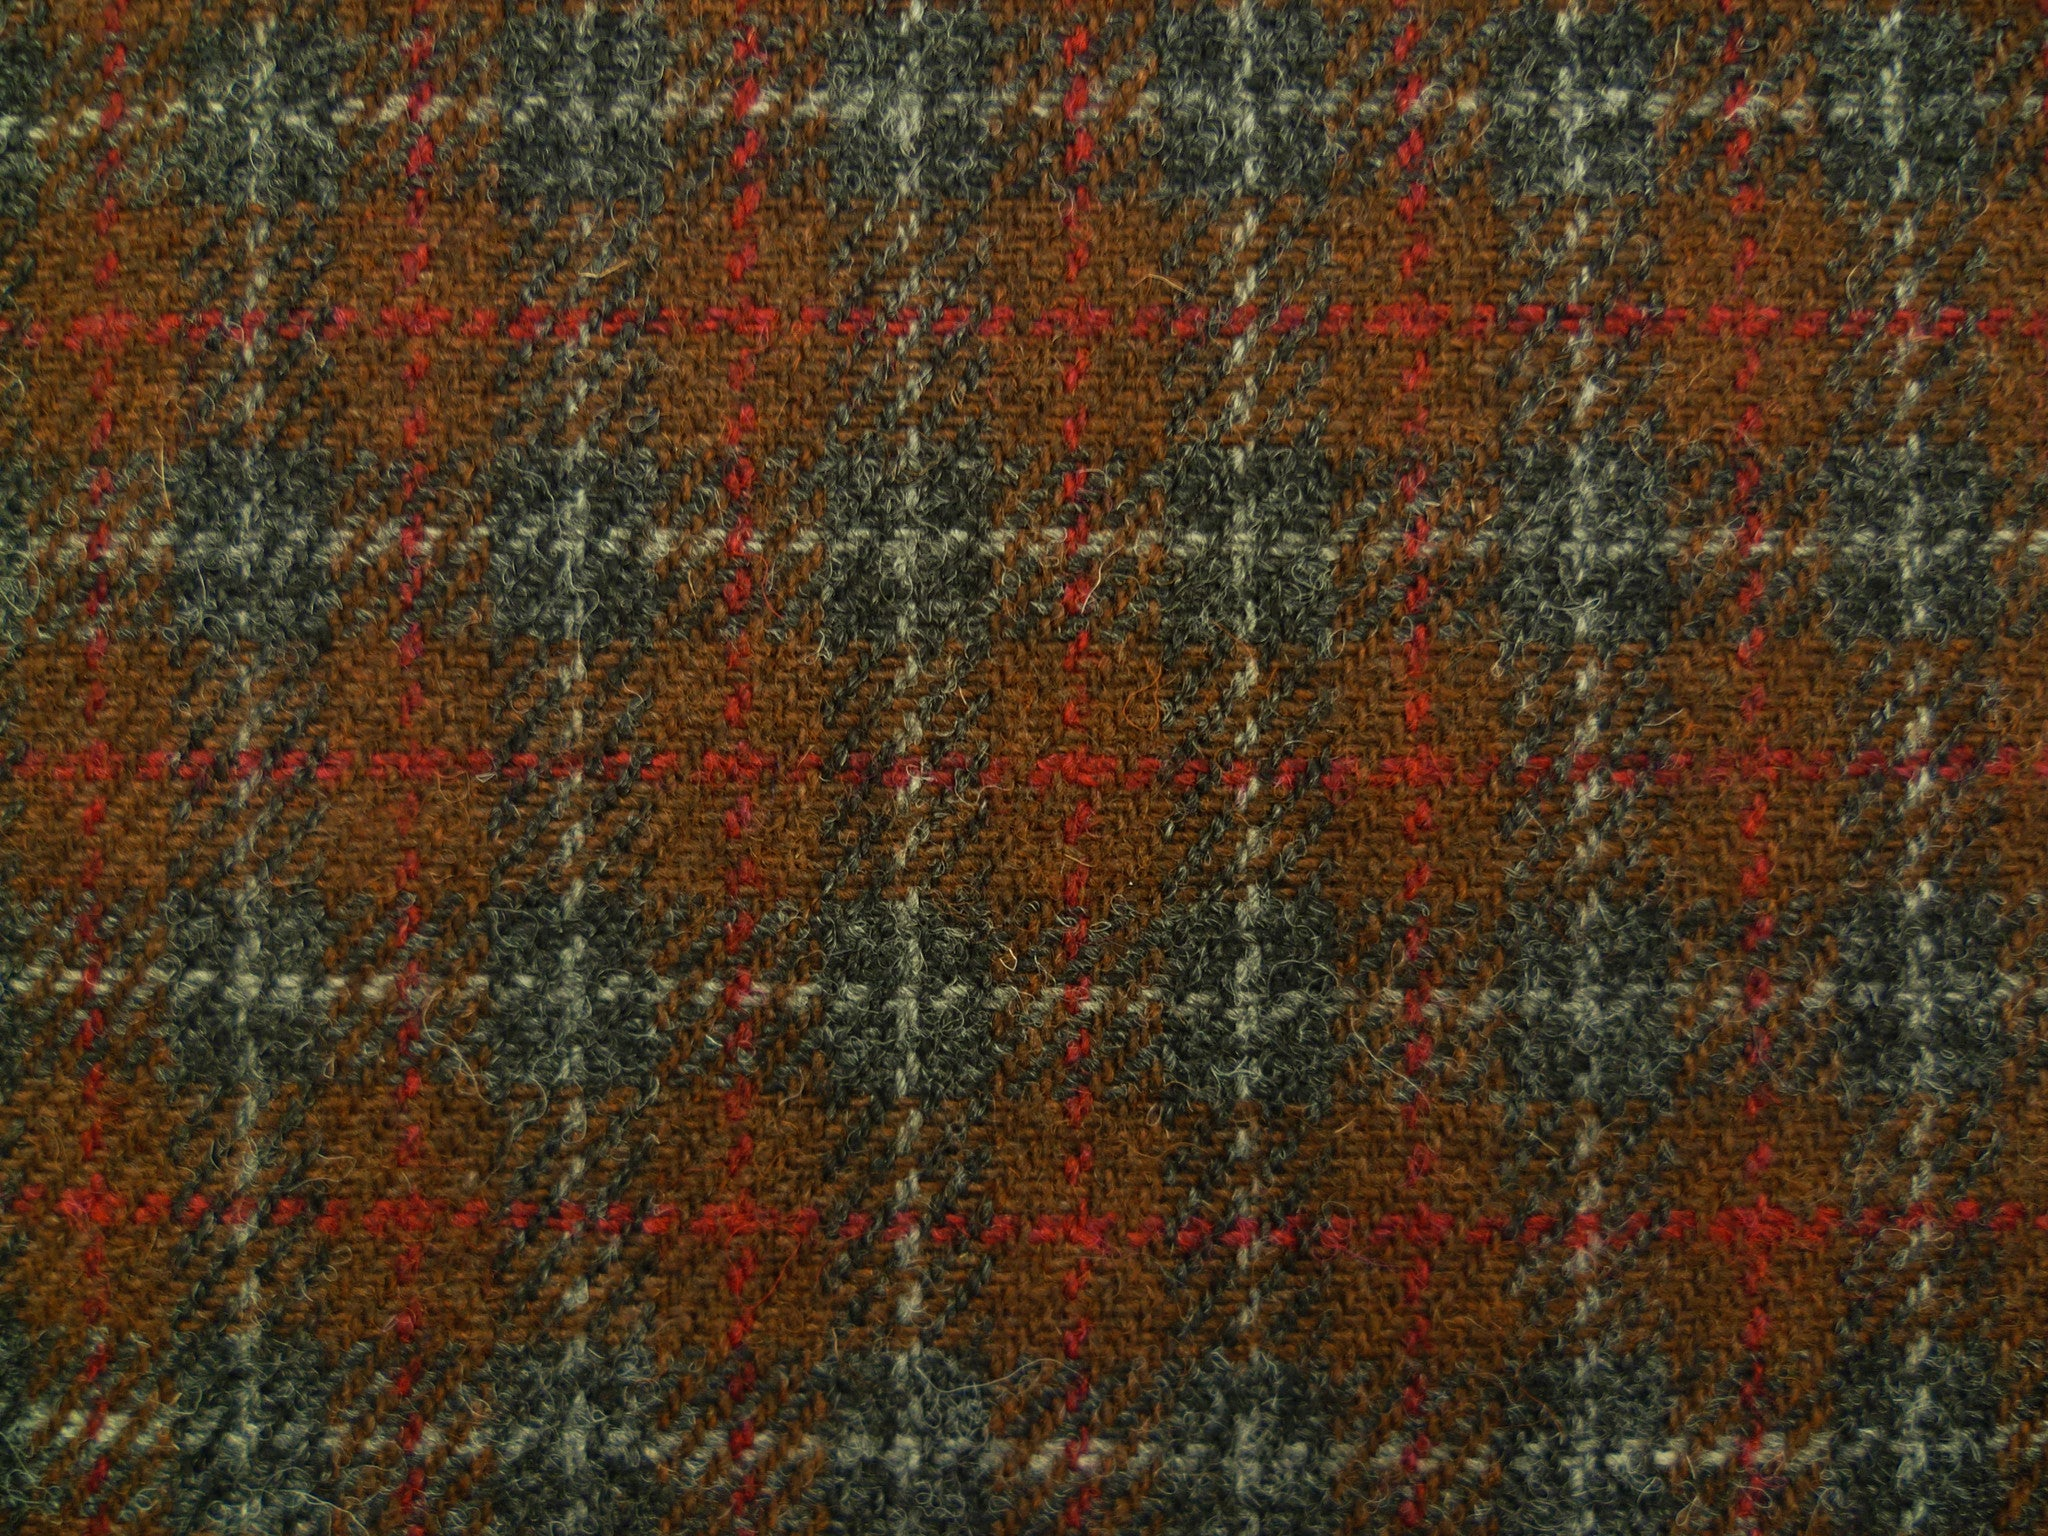 Reddish Brown with Black, Red and Soft Grey Overchecked Wool